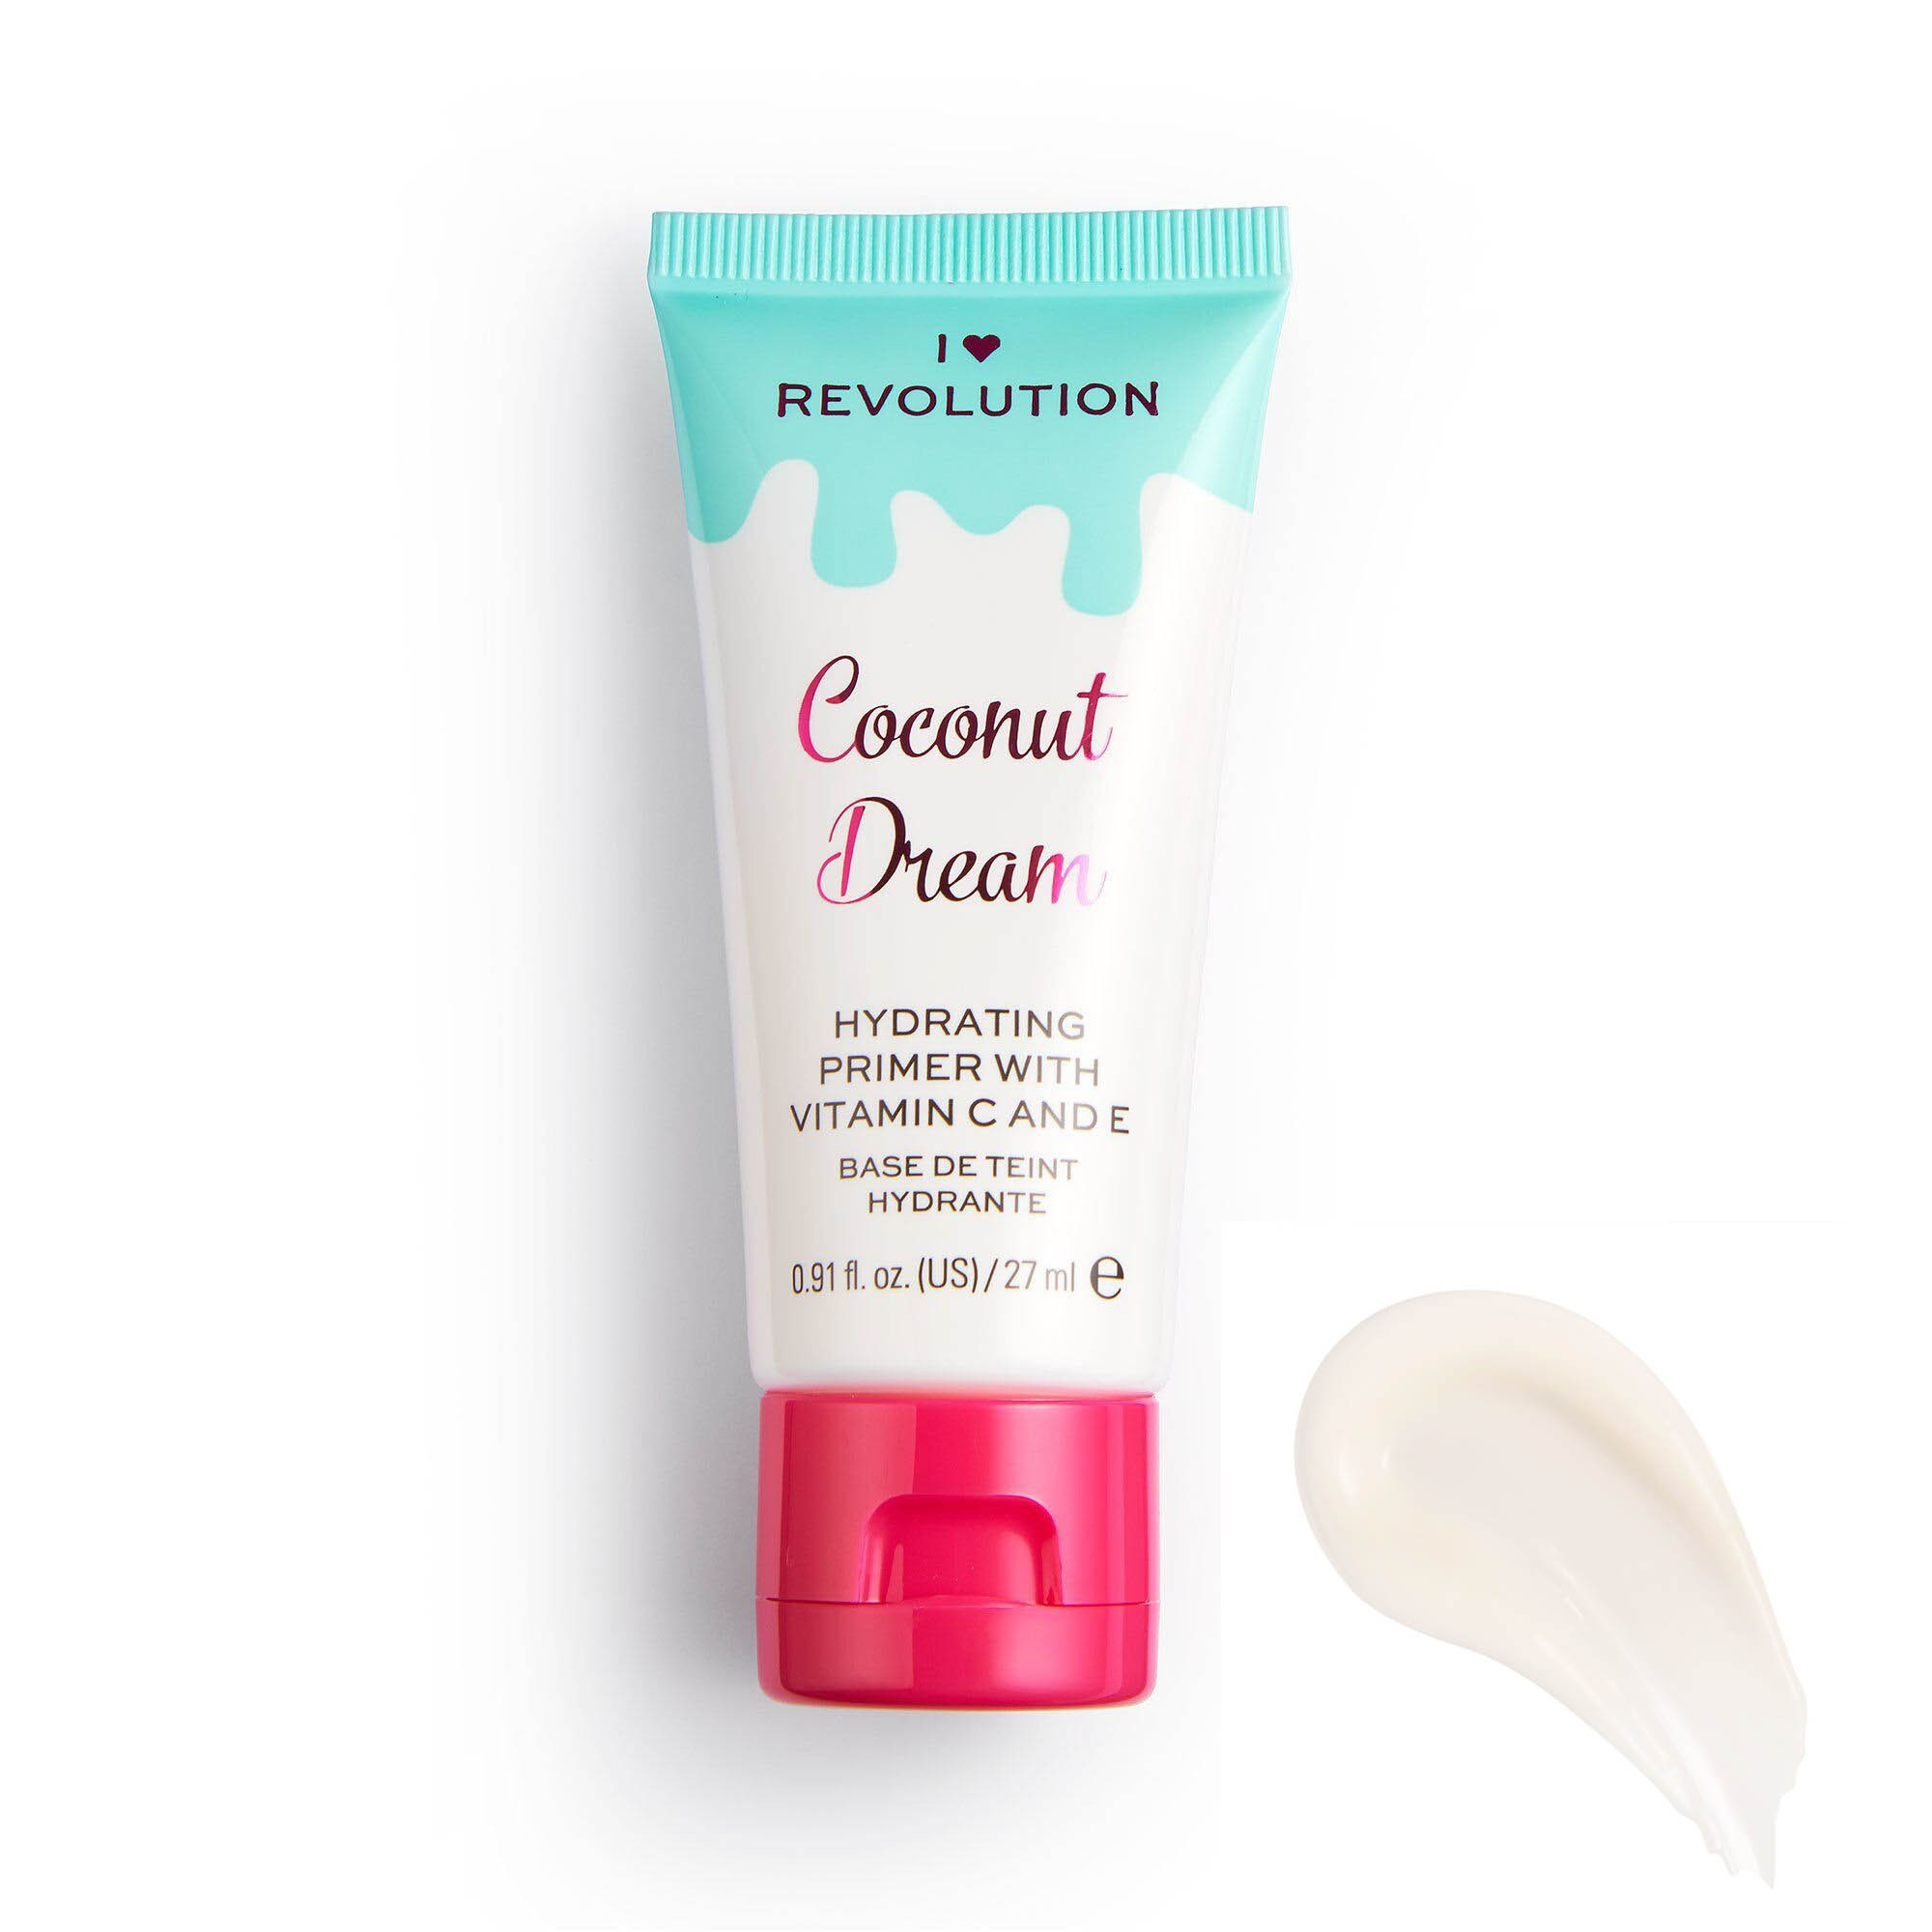 Gesichtsprimer - Coconut Dream - Hydrating Primer